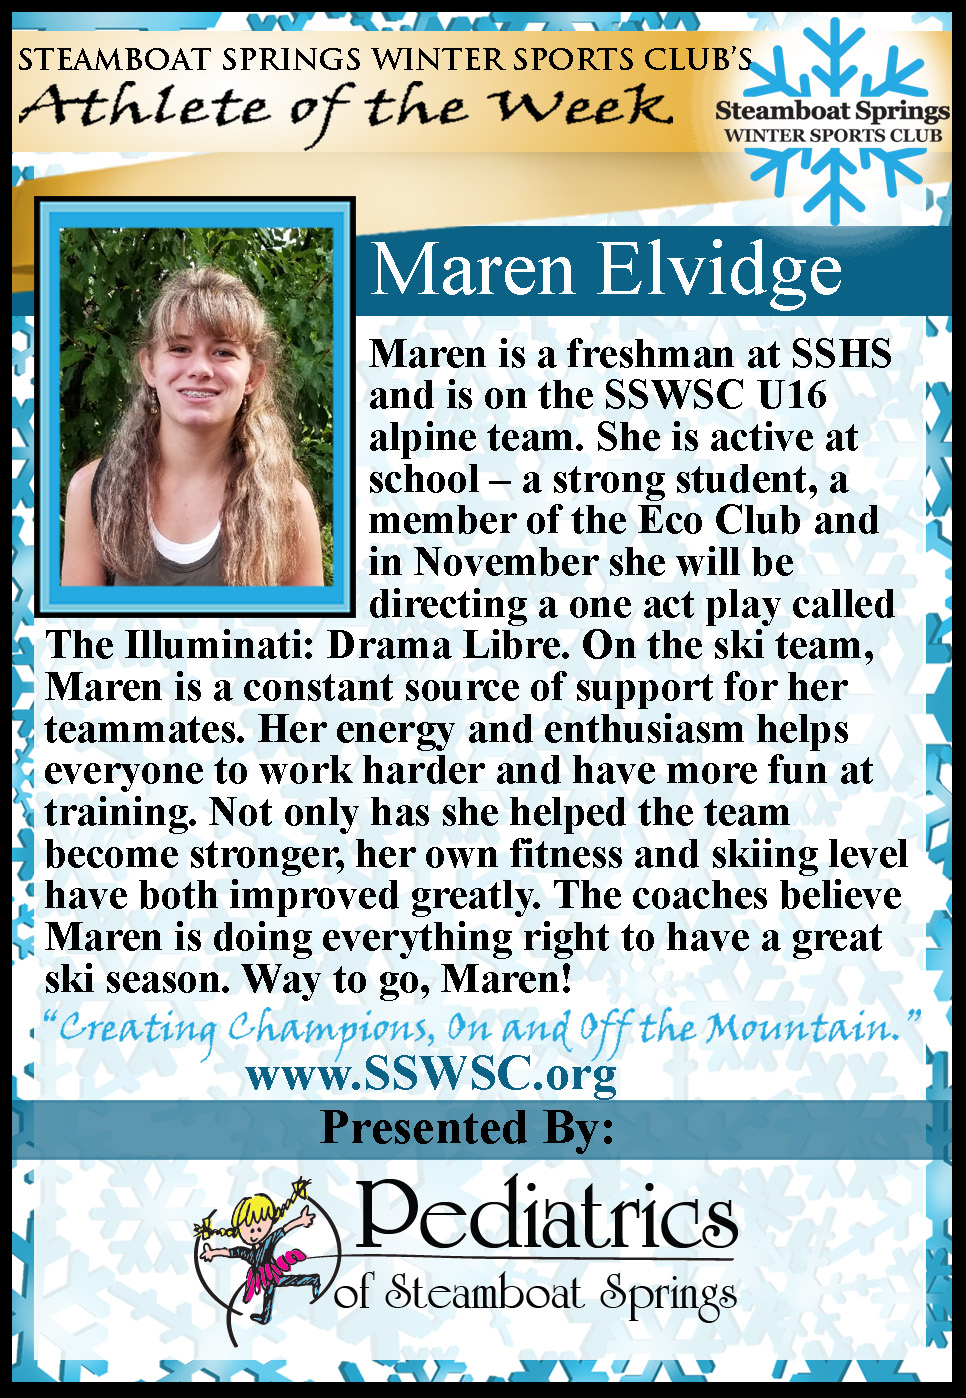 Athlete of the Week, Maren Elvidge